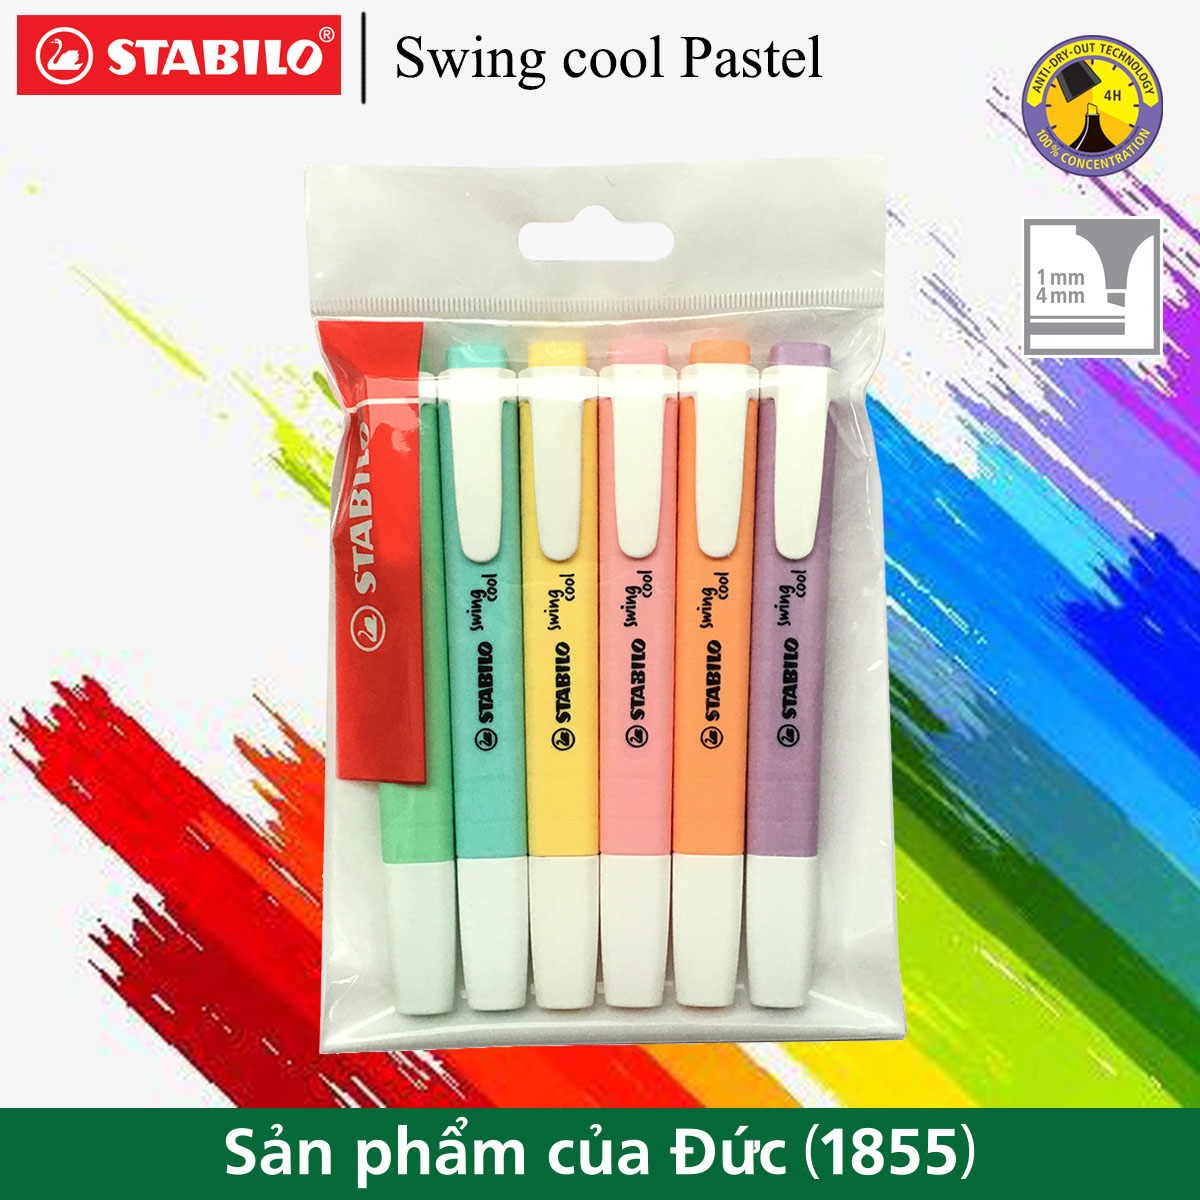 bo-6-but-da-quang-stabilo-swing-cool-pastel-hlp275-c6